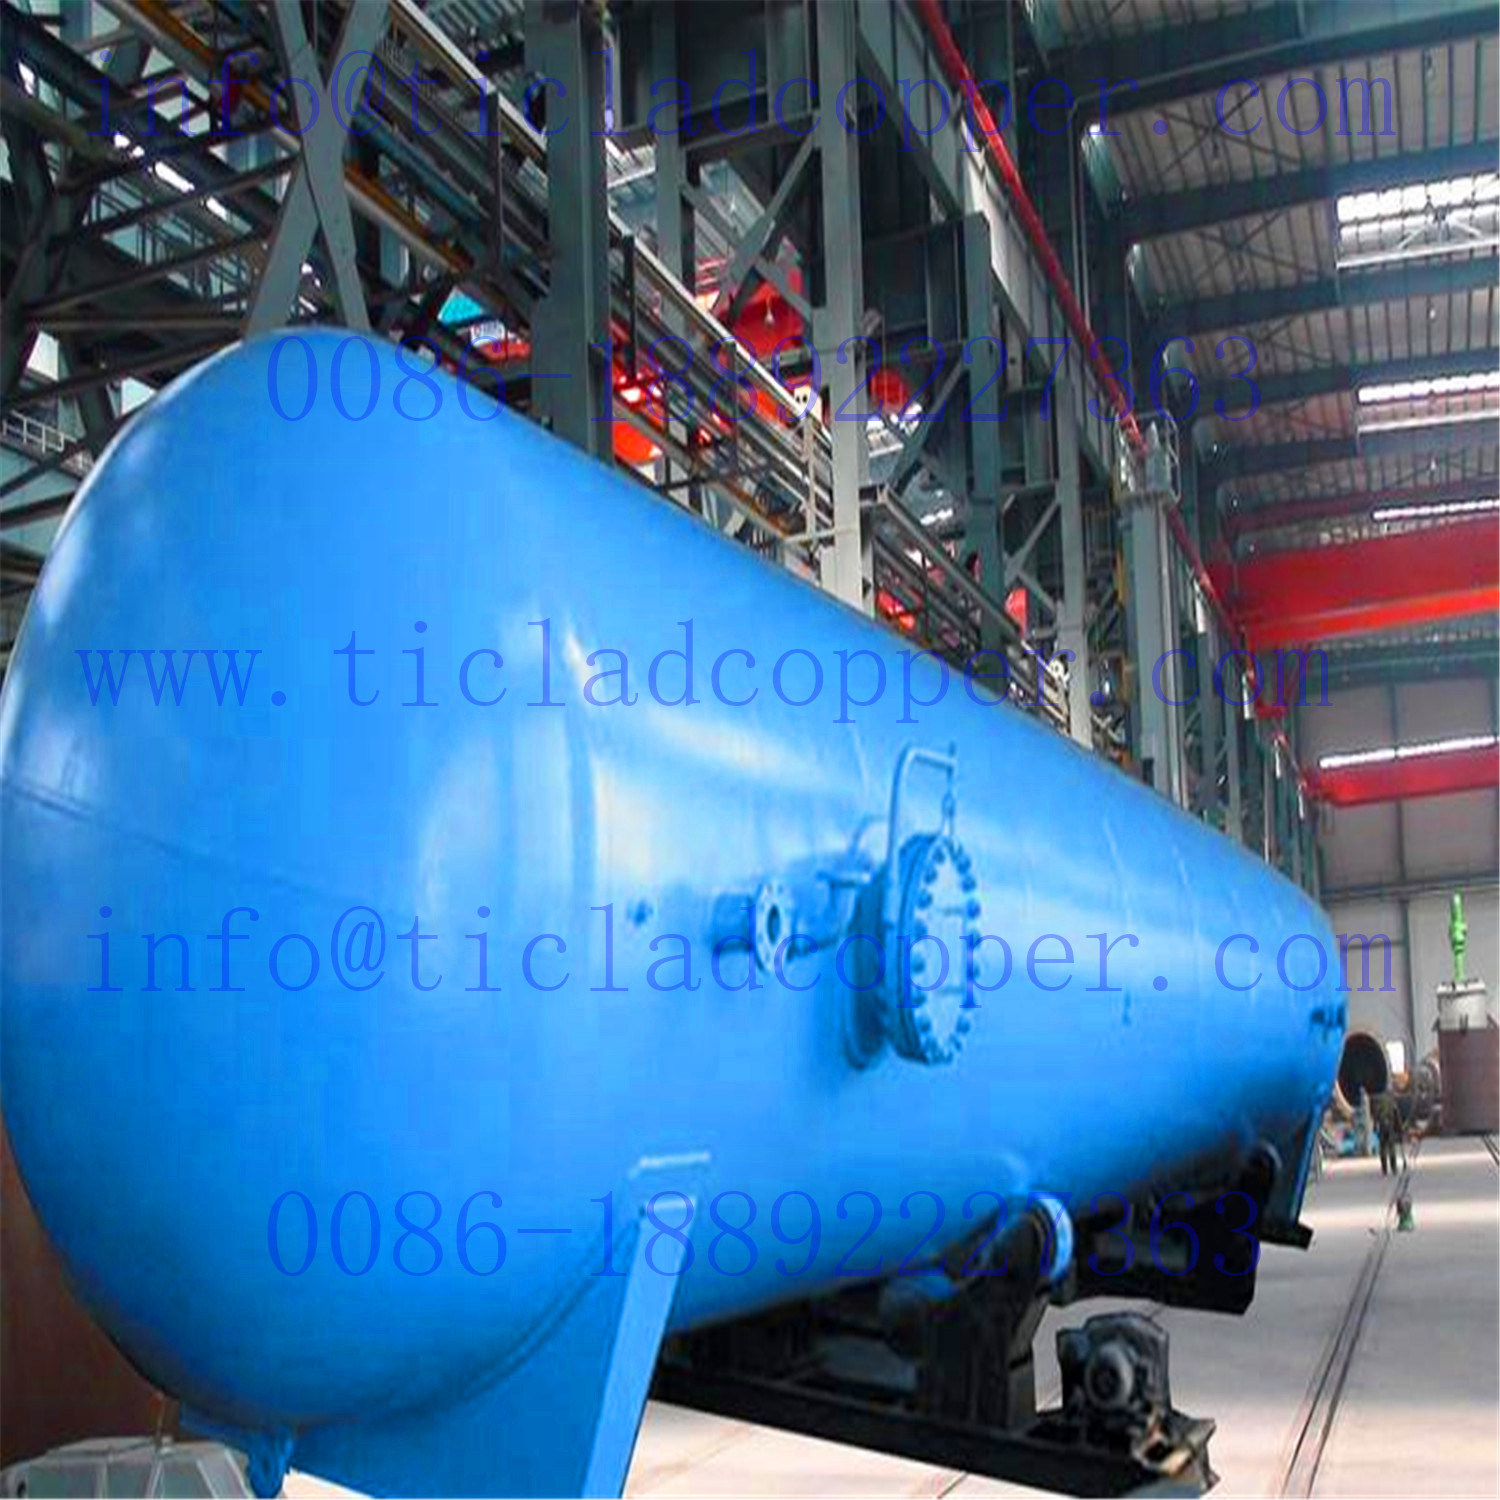 Reliable Industrial Steel Pressure Vessel